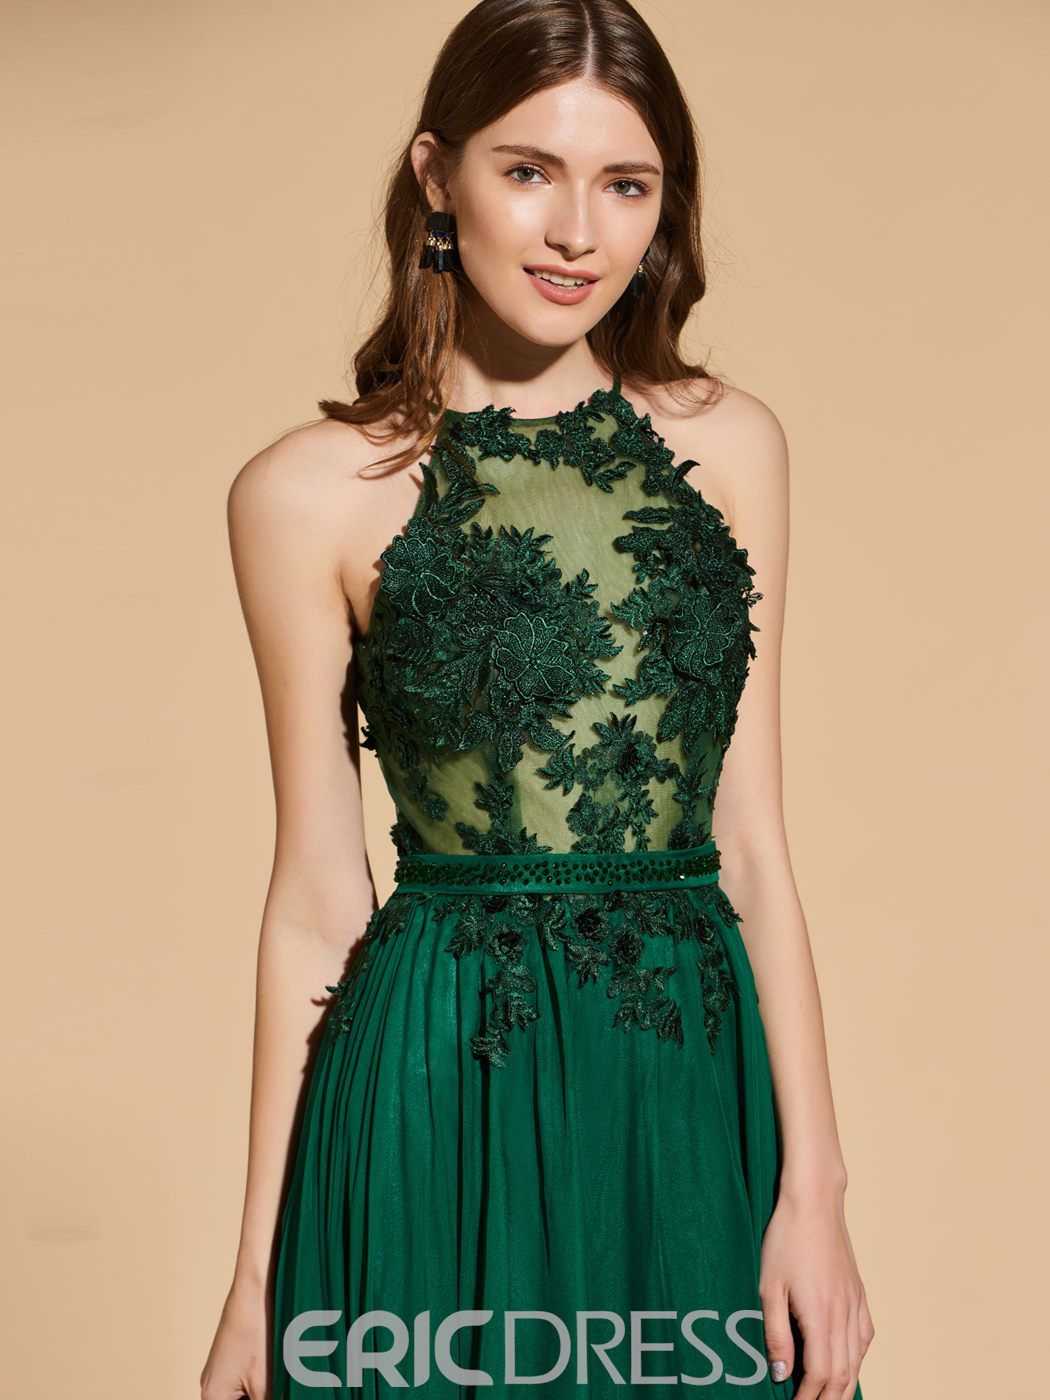 Ericdress A Line Halter Prom Dress With Applique